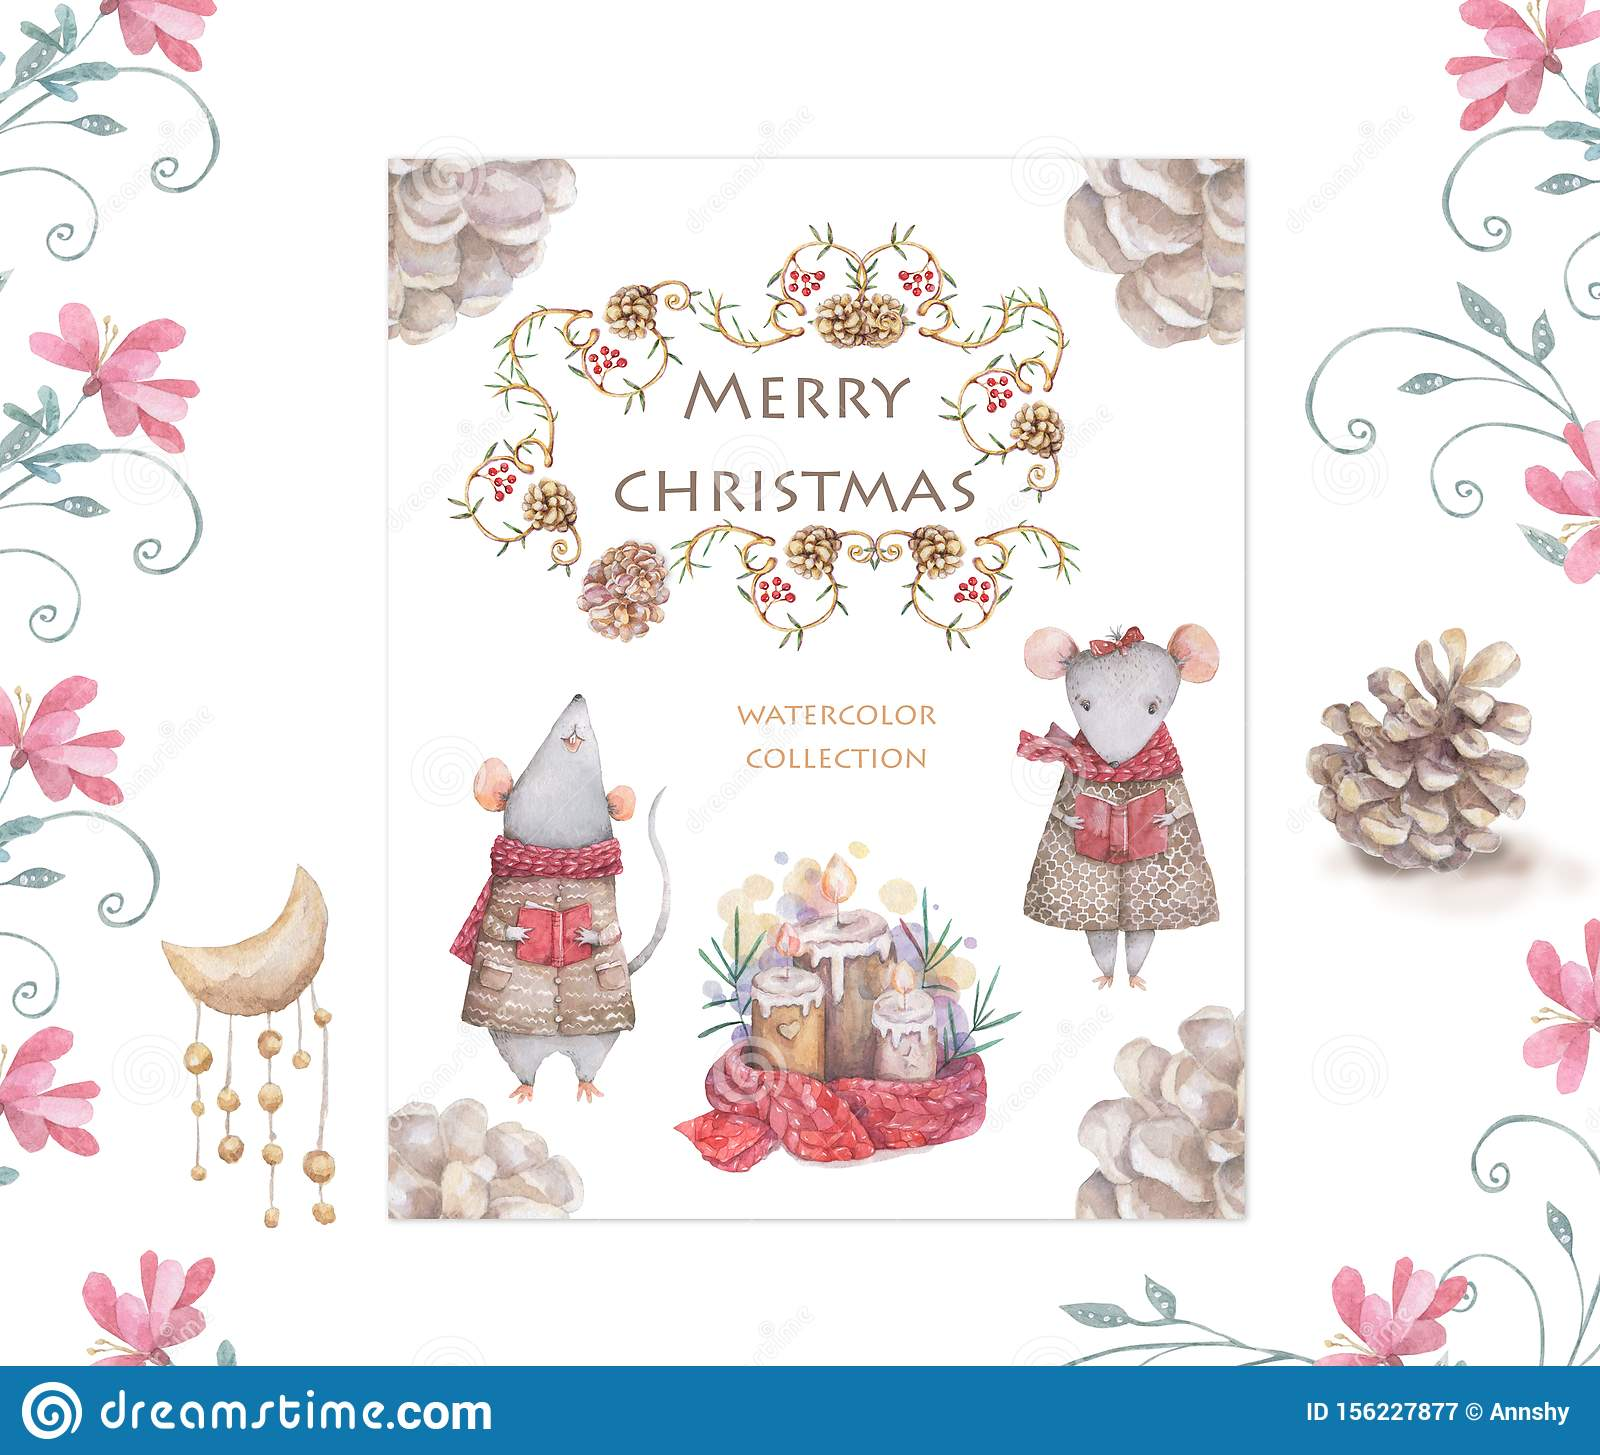 Cute cartoon christmas rat mouse christmas card. Watercolor hand drawn animal illustration. New Year 2020 holiday drawing